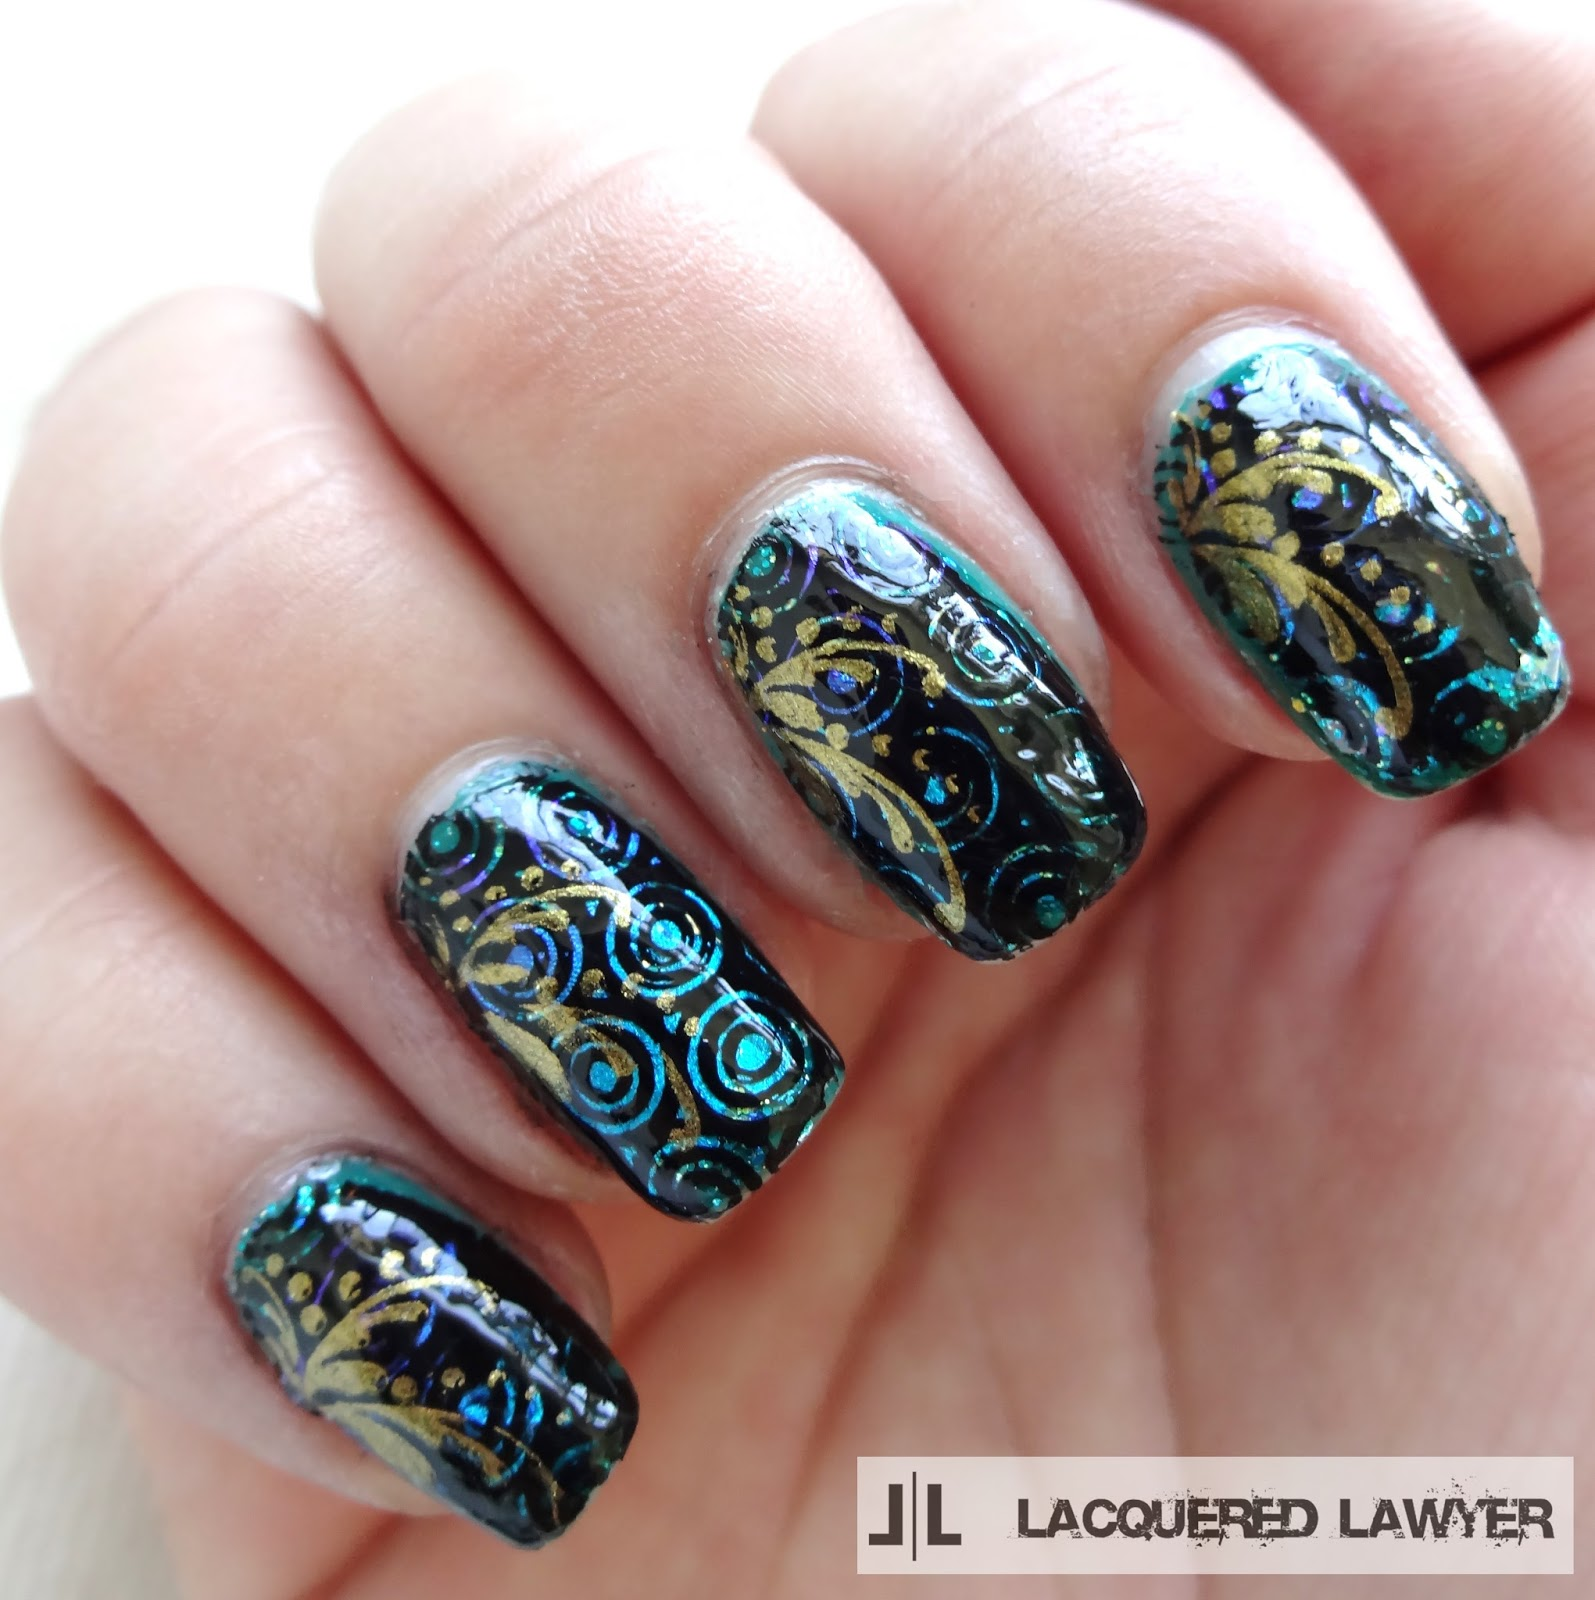 Lacquered Lawyer | Nail Art Blog: Mani Upcycle - Foil Fantasy